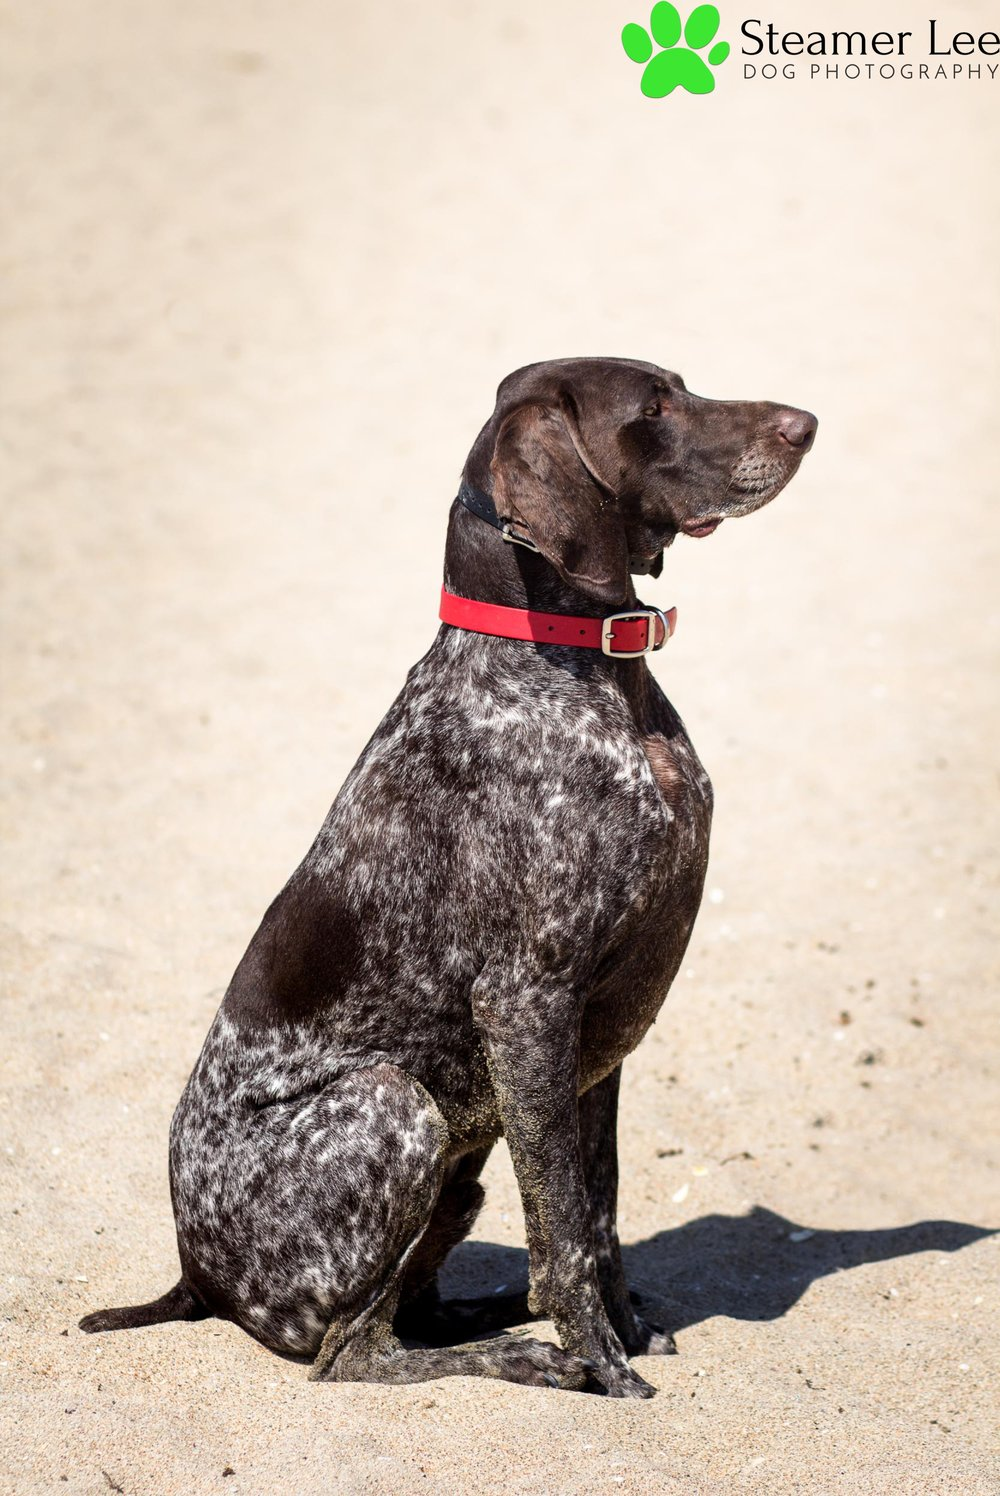 Steamer Lee Dog Photography - German Shorthaired Pointer Meetup - Huntington Beach Dog Beach - 00018.jpg